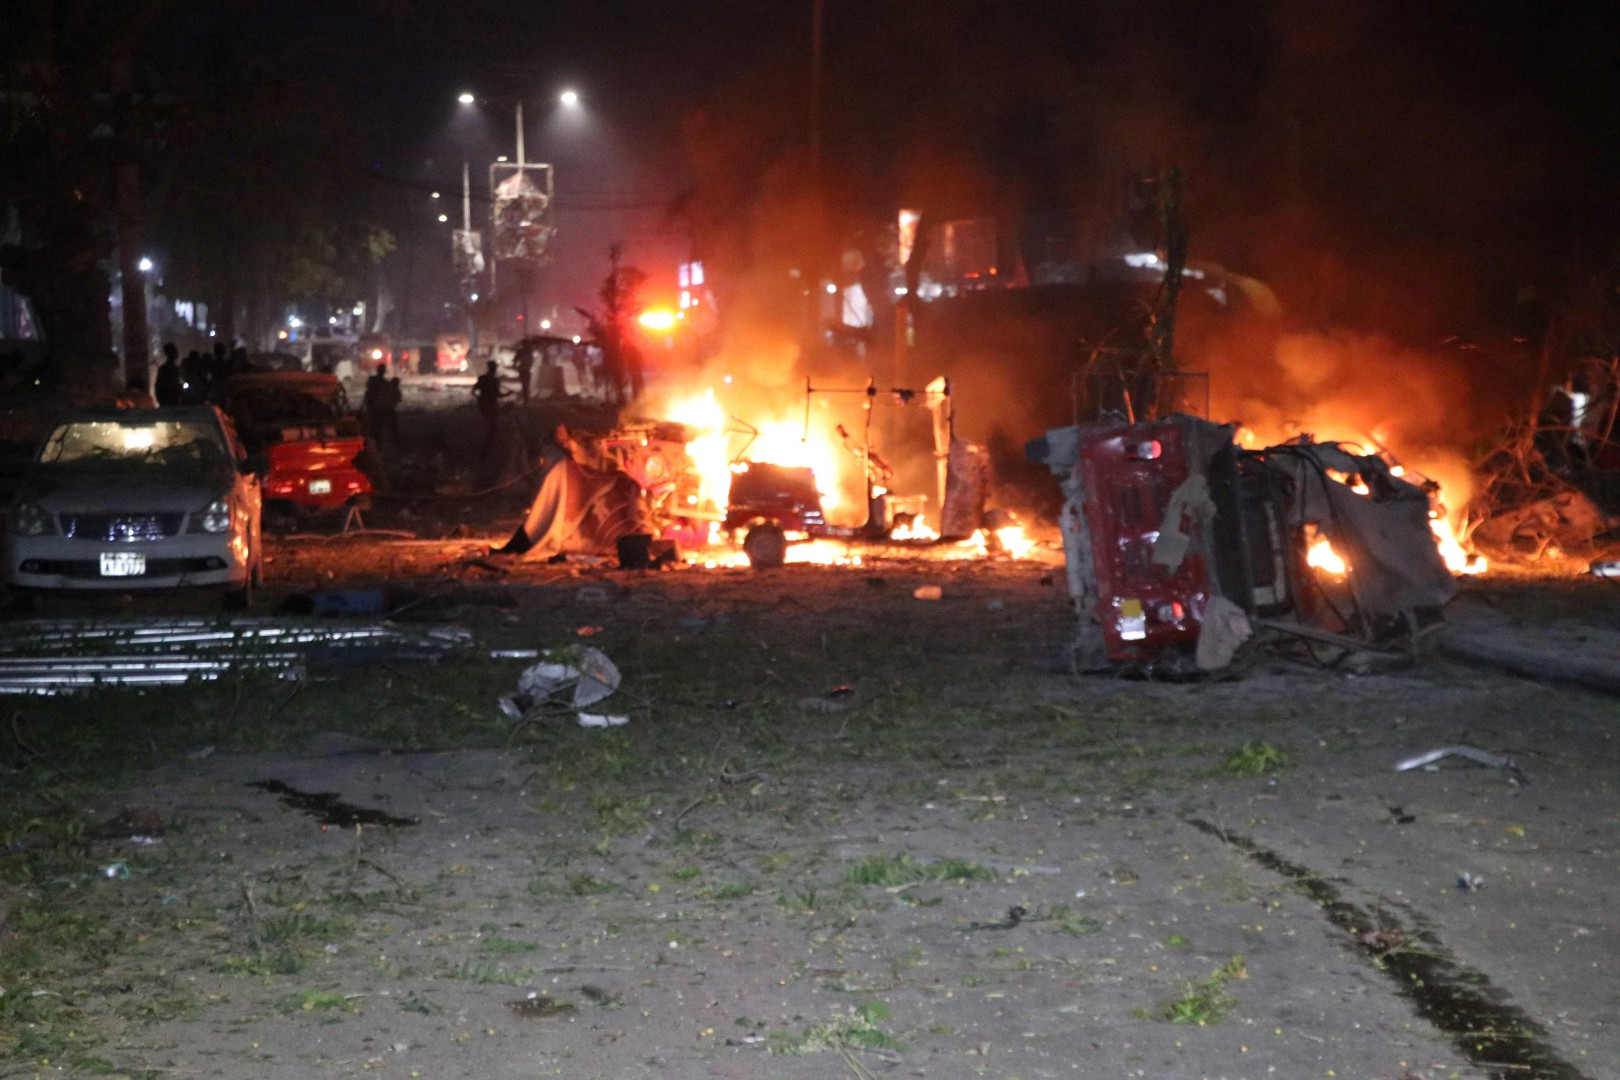 Shells of vehicles burn outside the Maka Al-Mukarama hotel in the Somalia capital, Mogadishu on February 28, 2019 after a car bomb exploded, killing at least five people and wounding 25 others. - Witnesses described how the blast ripped through one of the busiest streets of the capital in the early evening, filled with people relaxing after a day at work. (Photo by Abdirazak Hussein FARAH / AFP)